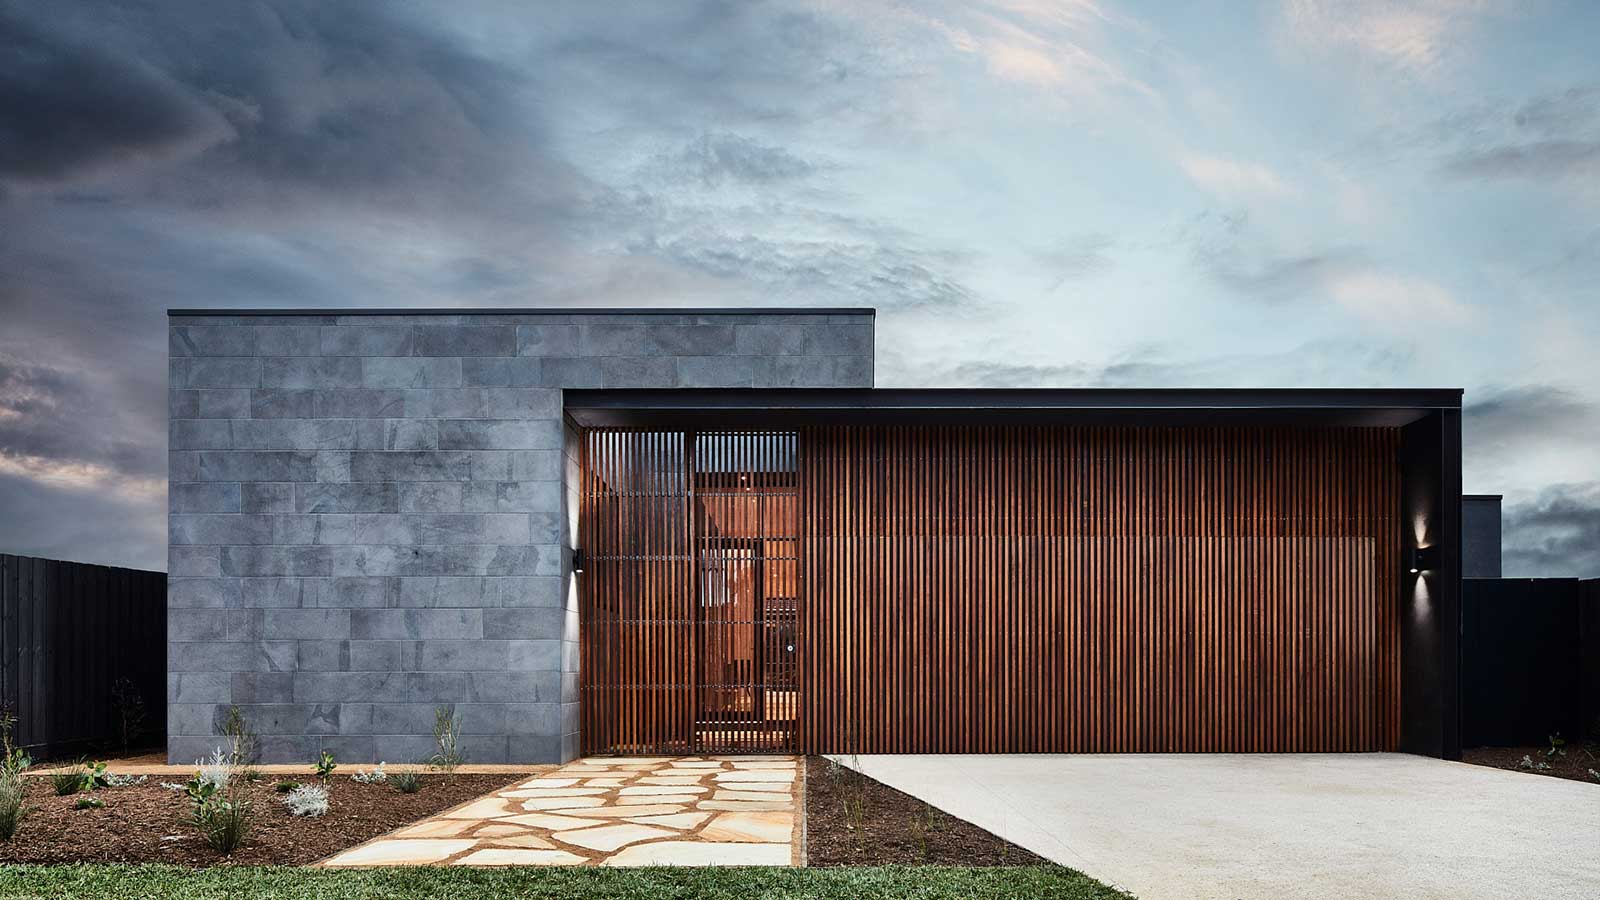 The Courtyard House by Auhaus